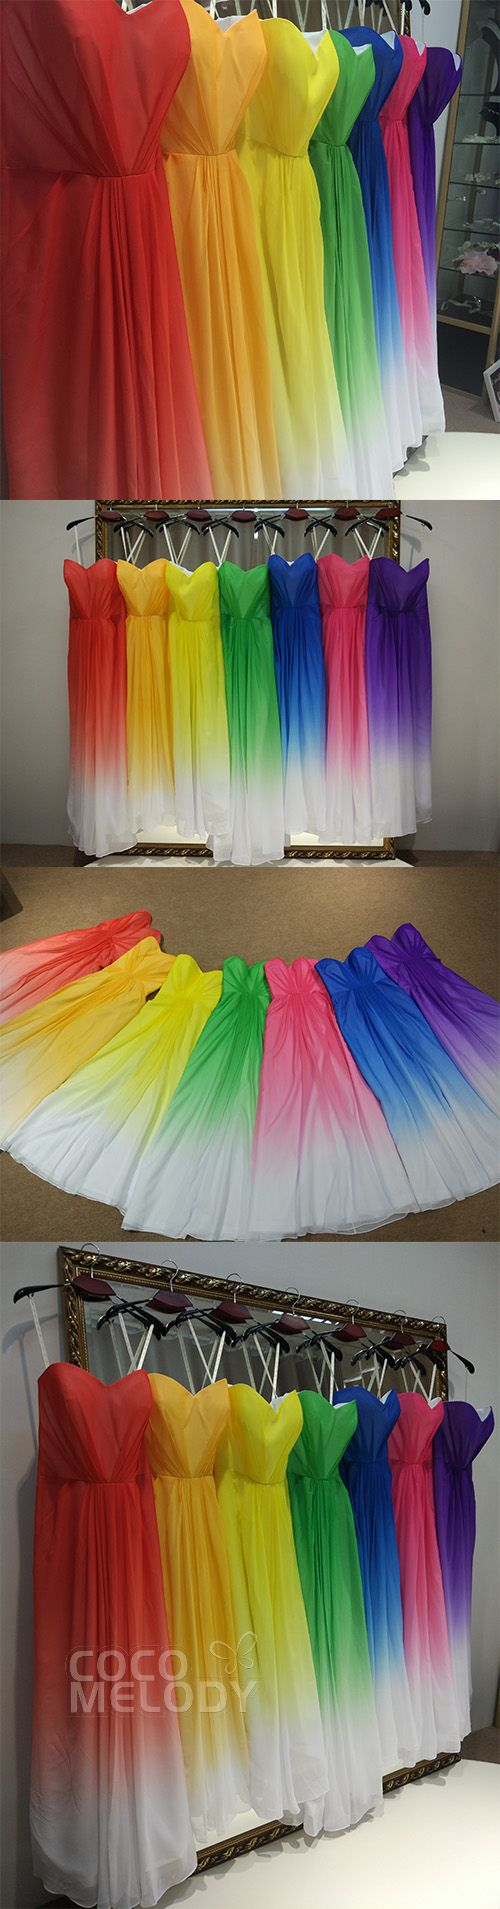 "Amaizng rainbow bridesmaid dresses .Will you say ""yes "" to them . #cocomelody"